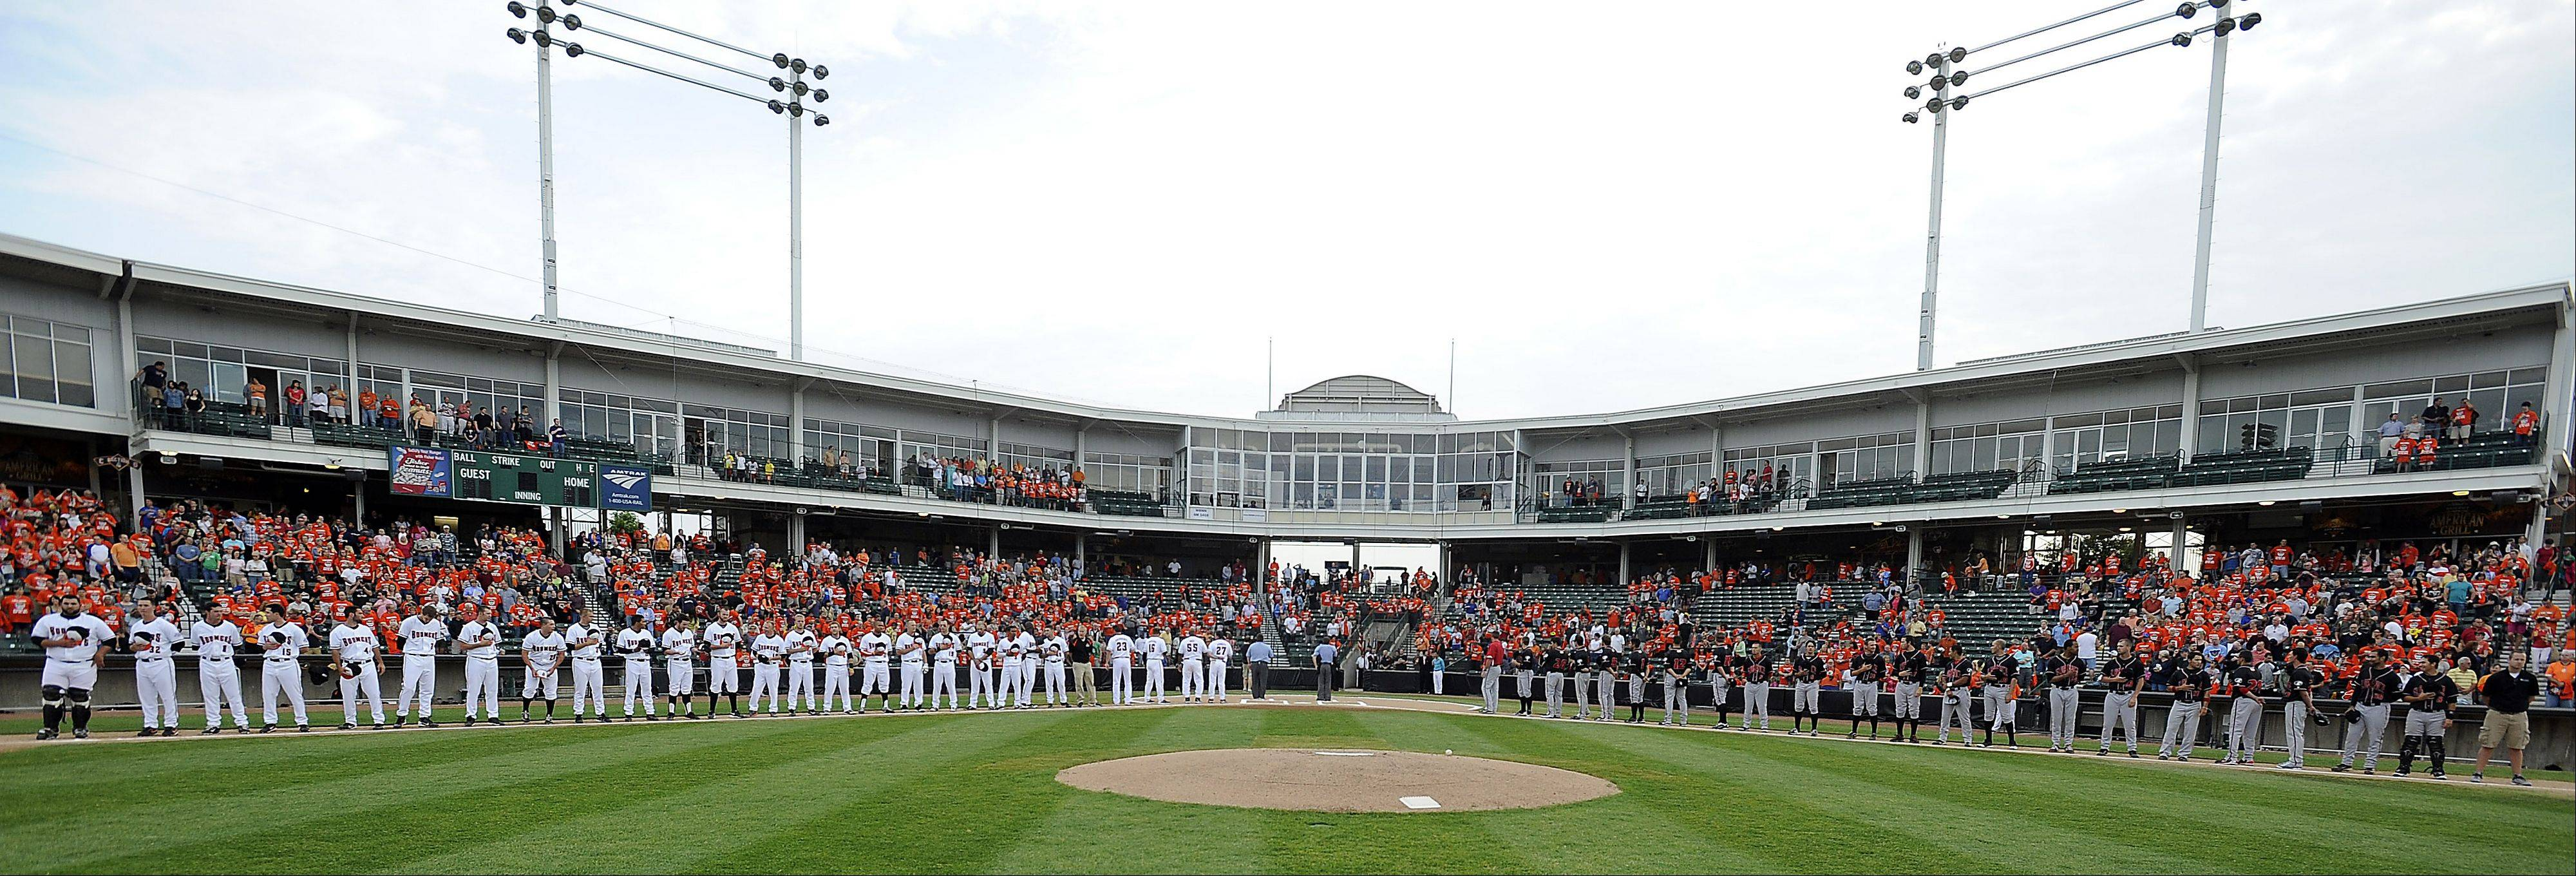 The Schaumburg Boomers and the Florence Freedom players take the field.